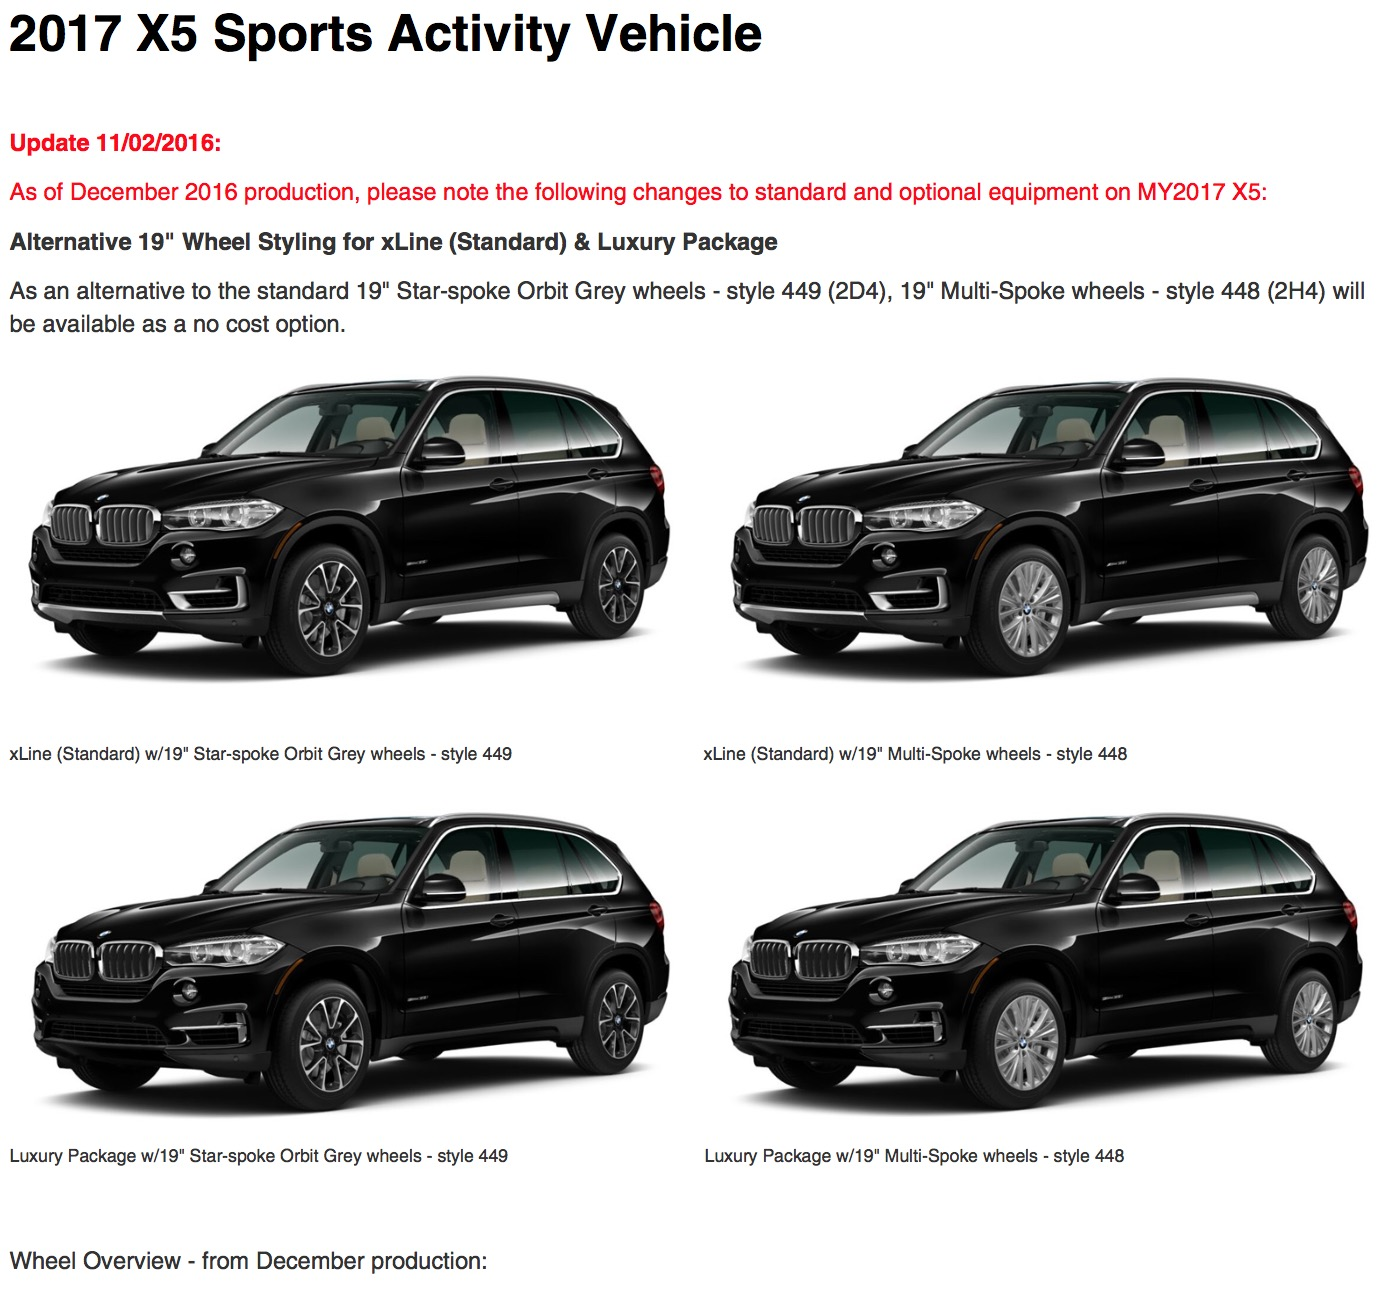 Bmw X6 Usa: 2017 BMW X5 And X6 Standard And Optional Equipment Changes